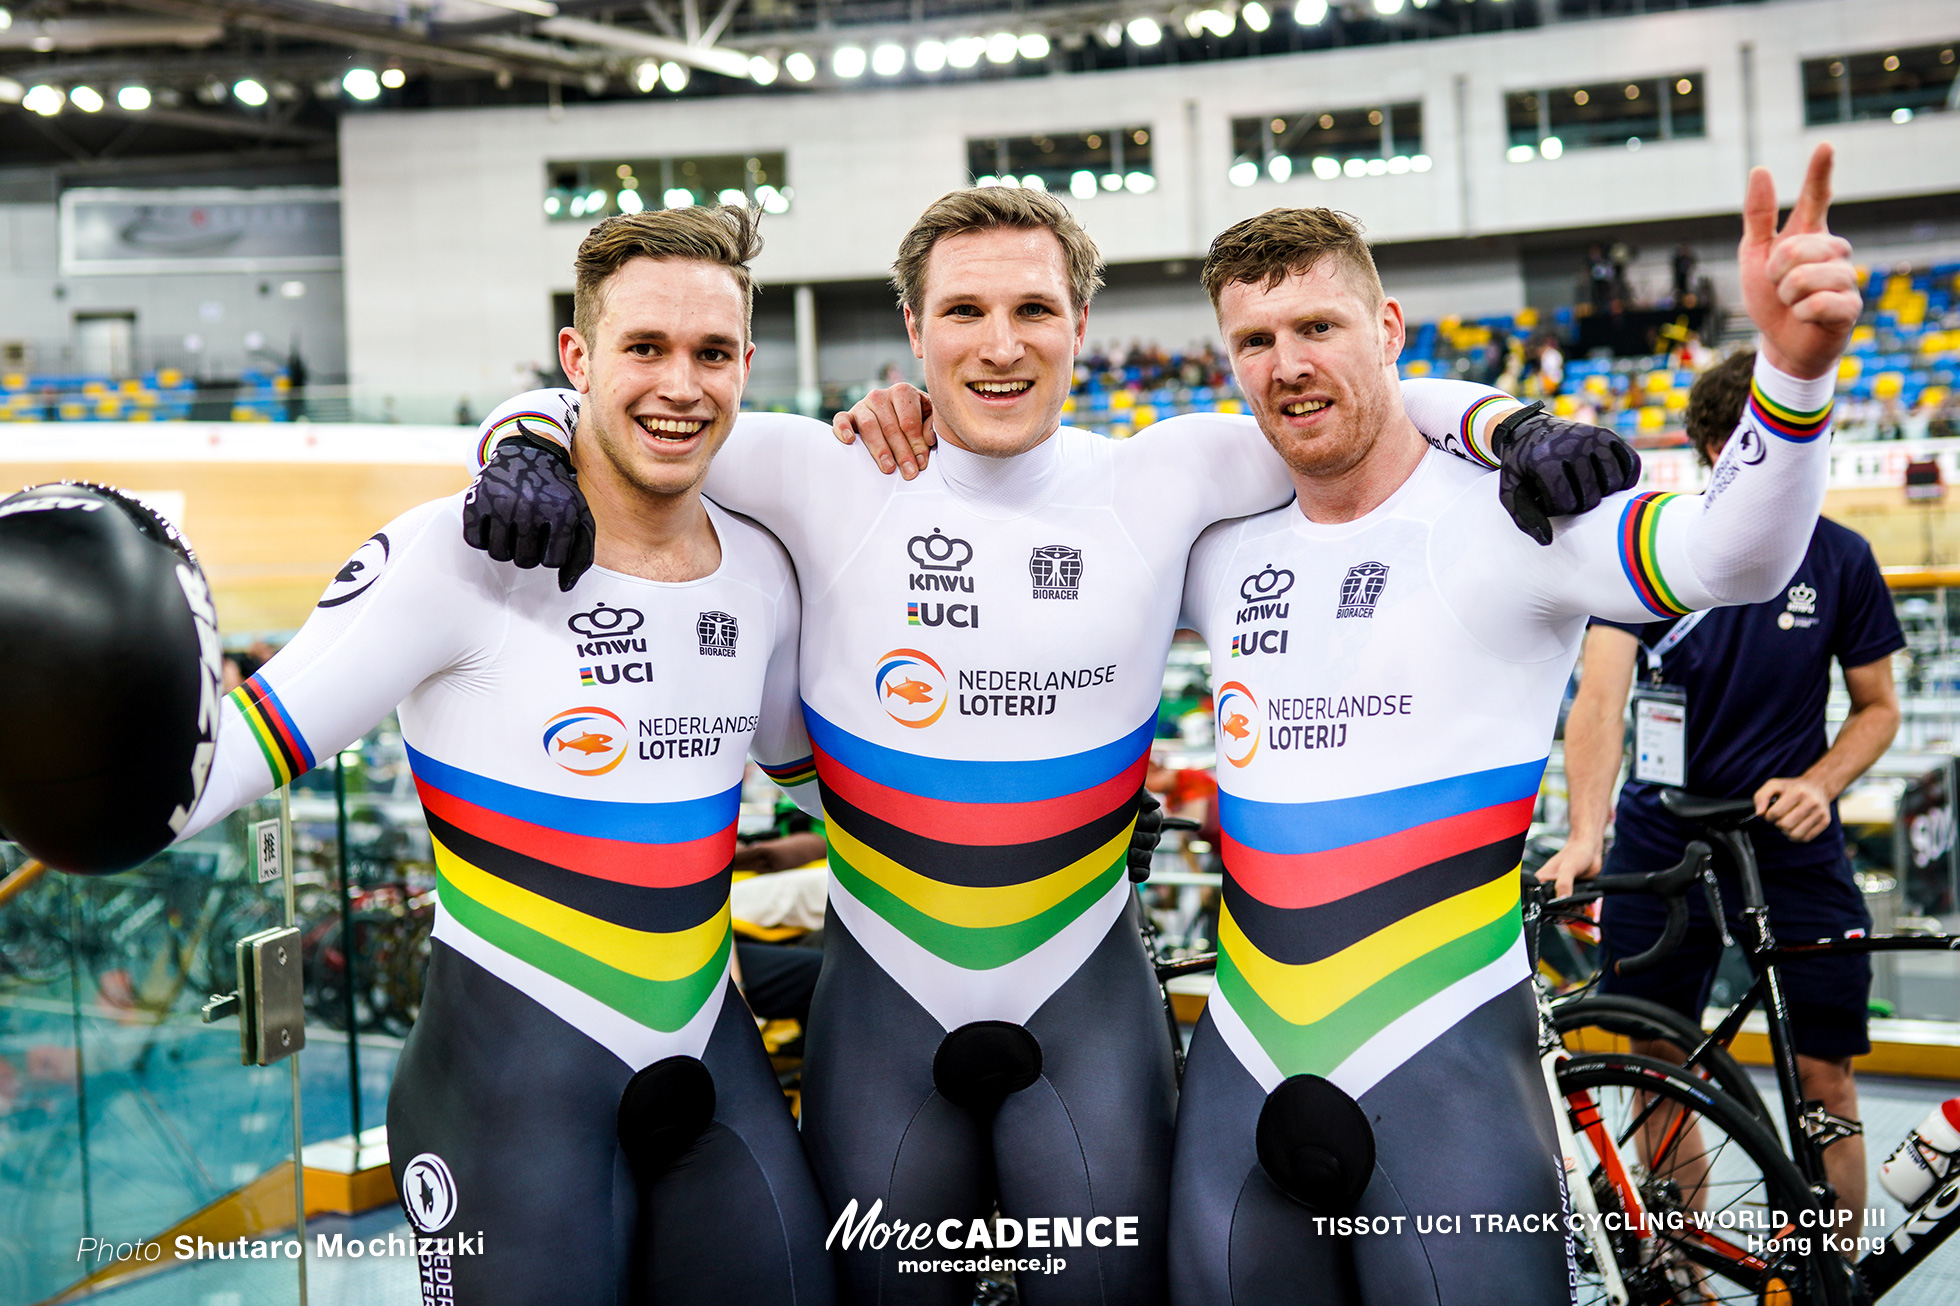 Final / Men's Team Sprint / TISSOT UCI TRACK CYCLING WORLD CUP III, Hong Kong, Jeffrey HOOGLAND ジェフリー・ホーフラント Harrie LAVREYSEN ハリー・ラブレイセン Roy van den BERG ロイ・バンデンバーグ